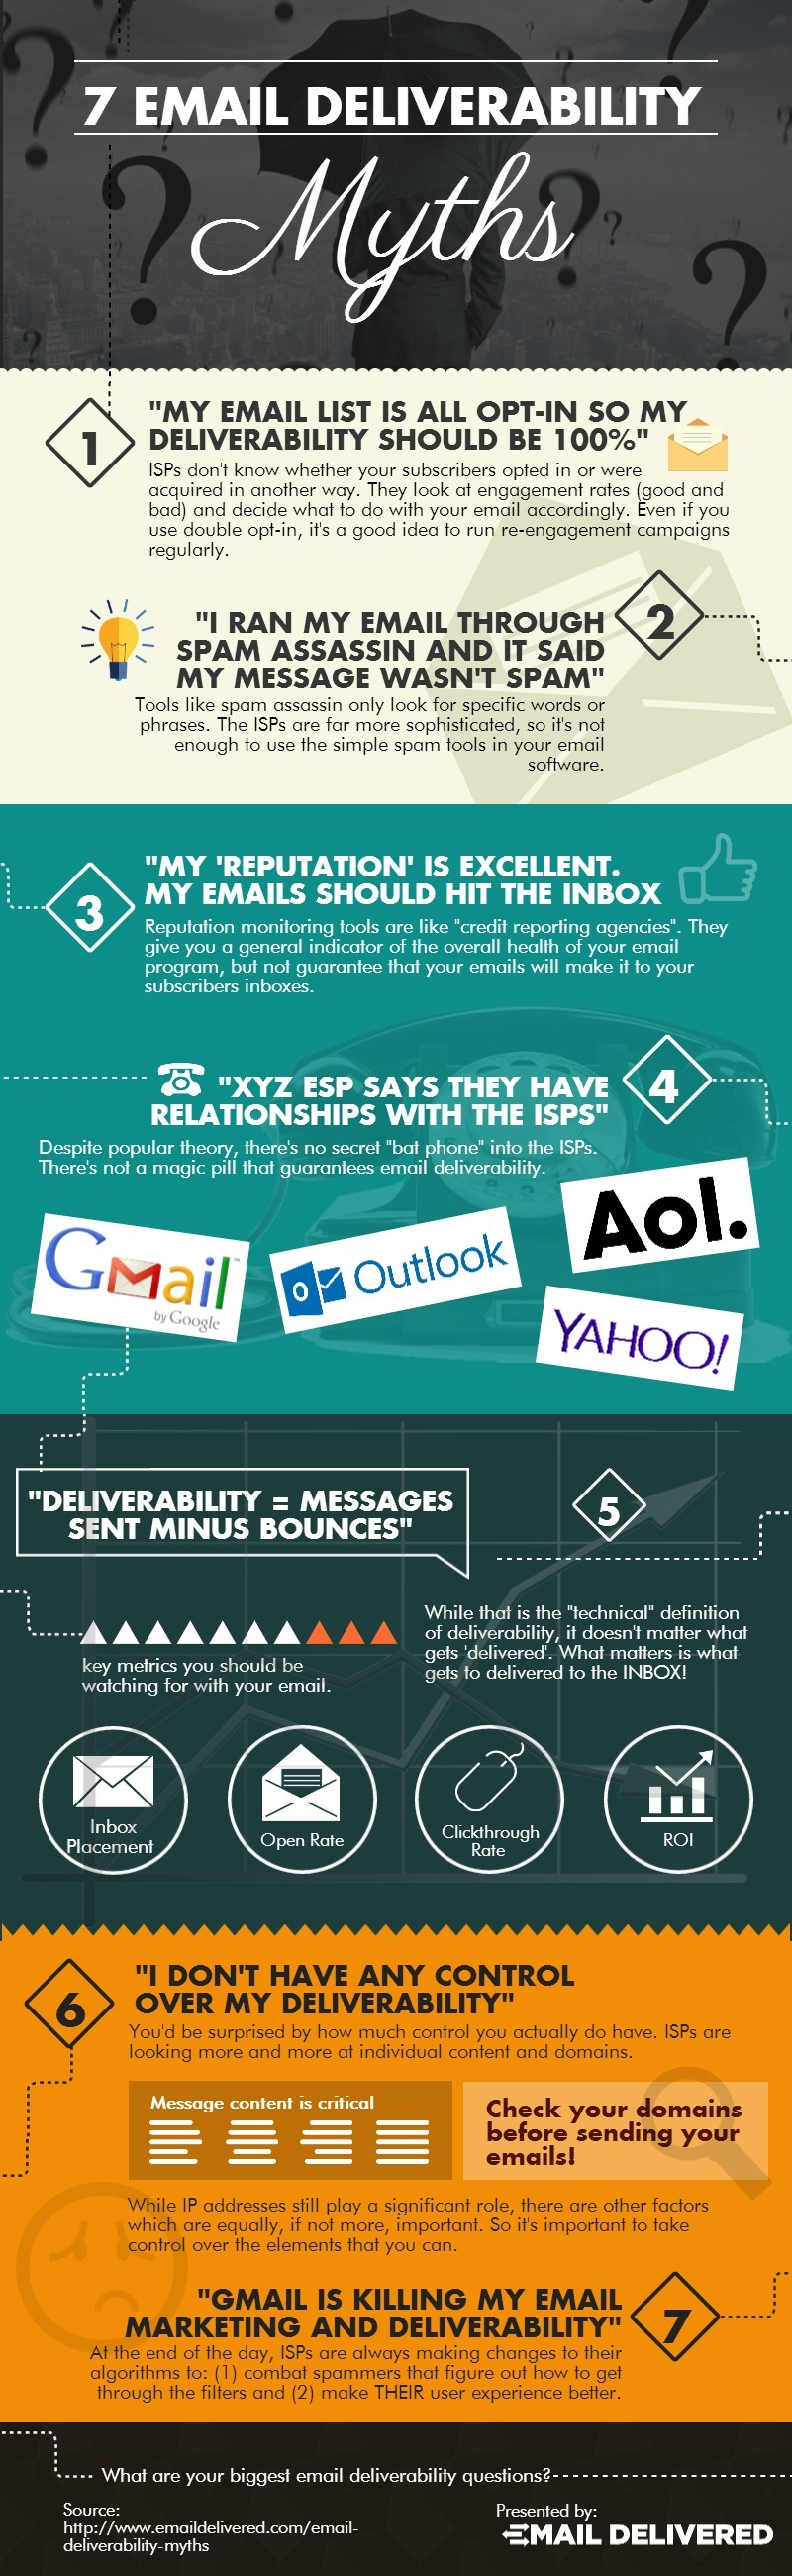 7 email deliverability myths-infographic